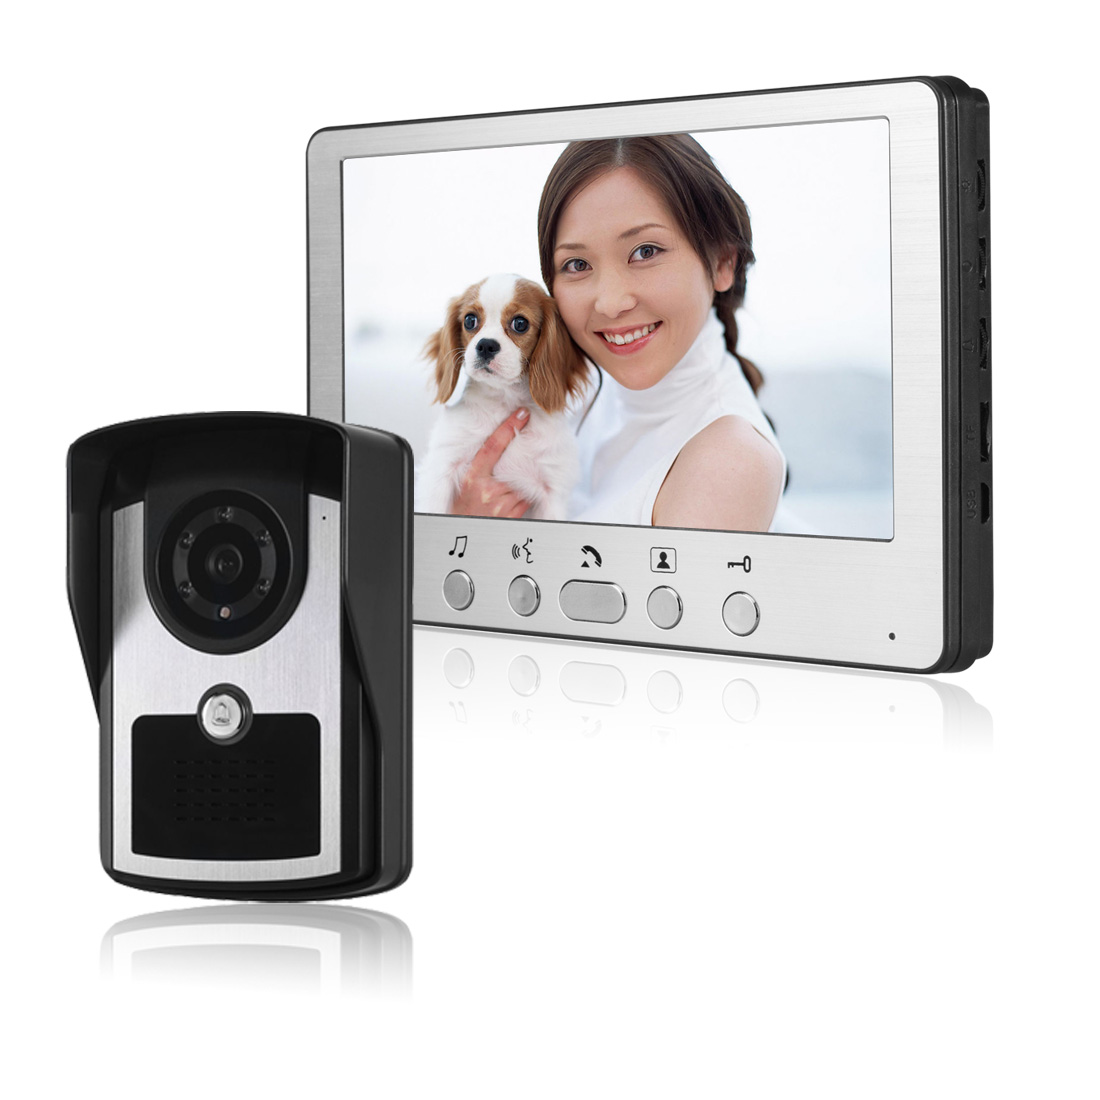 815FC11 Direct Factory With IR Night Vision Function IR Distance Is About 1-3 Meter 7 Color Video Door Phone Excel Performance815FC11 Direct Factory With IR Night Vision Function IR Distance Is About 1-3 Meter 7 Color Video Door Phone Excel Performance